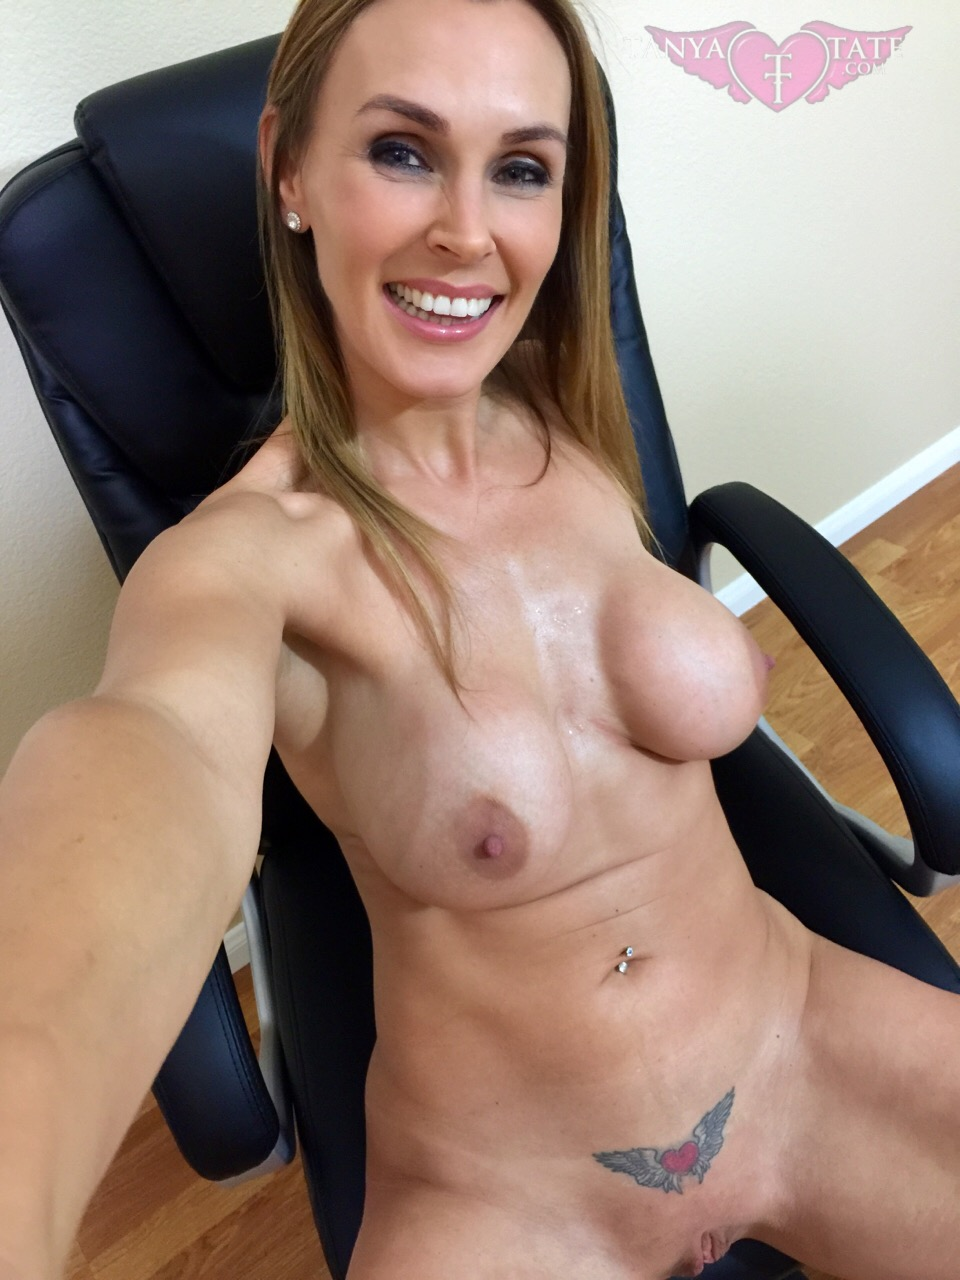 Commit tanya tate nude pics that